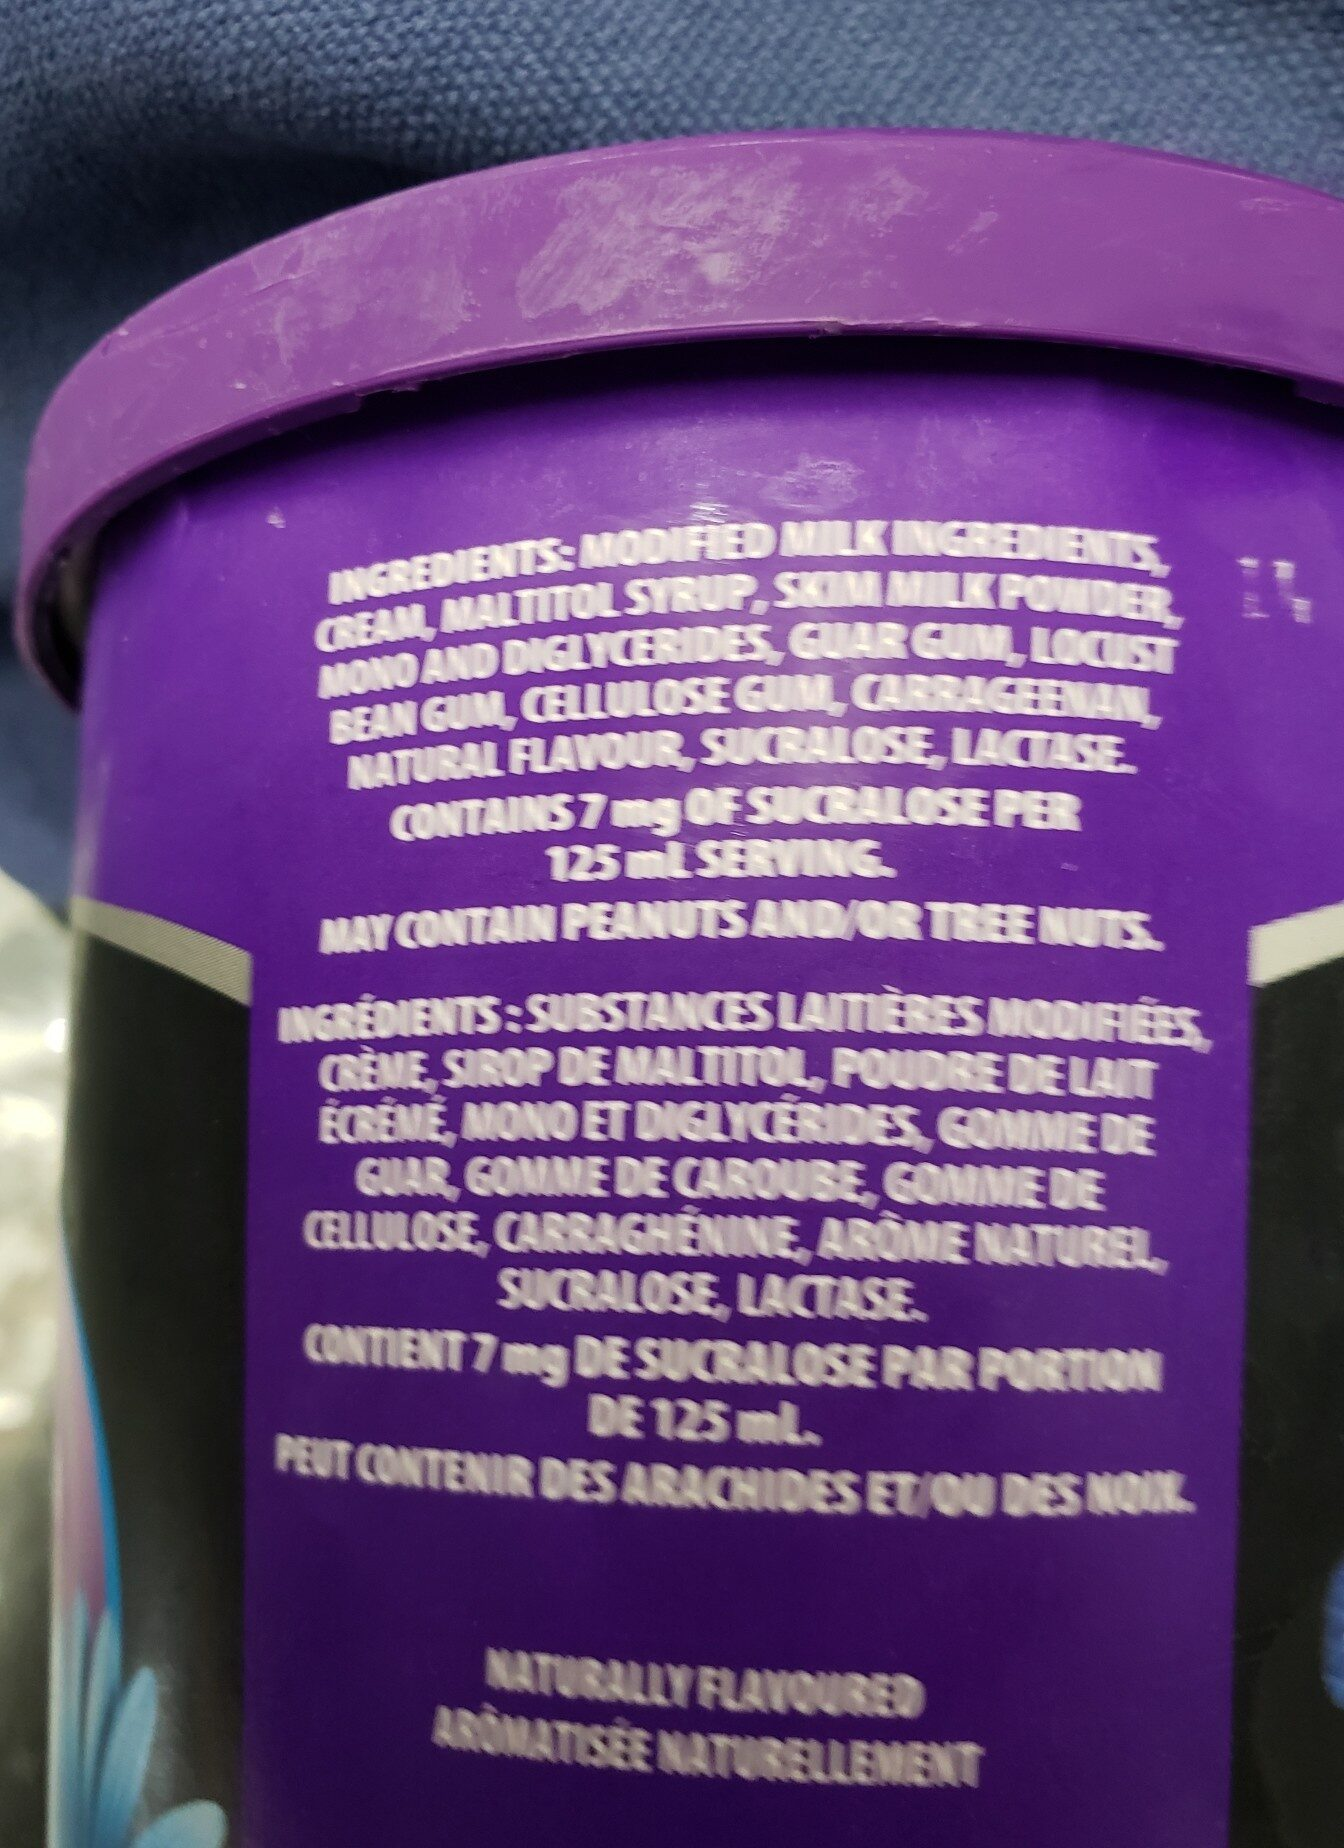 Ice crema glacee - Ingredients - en